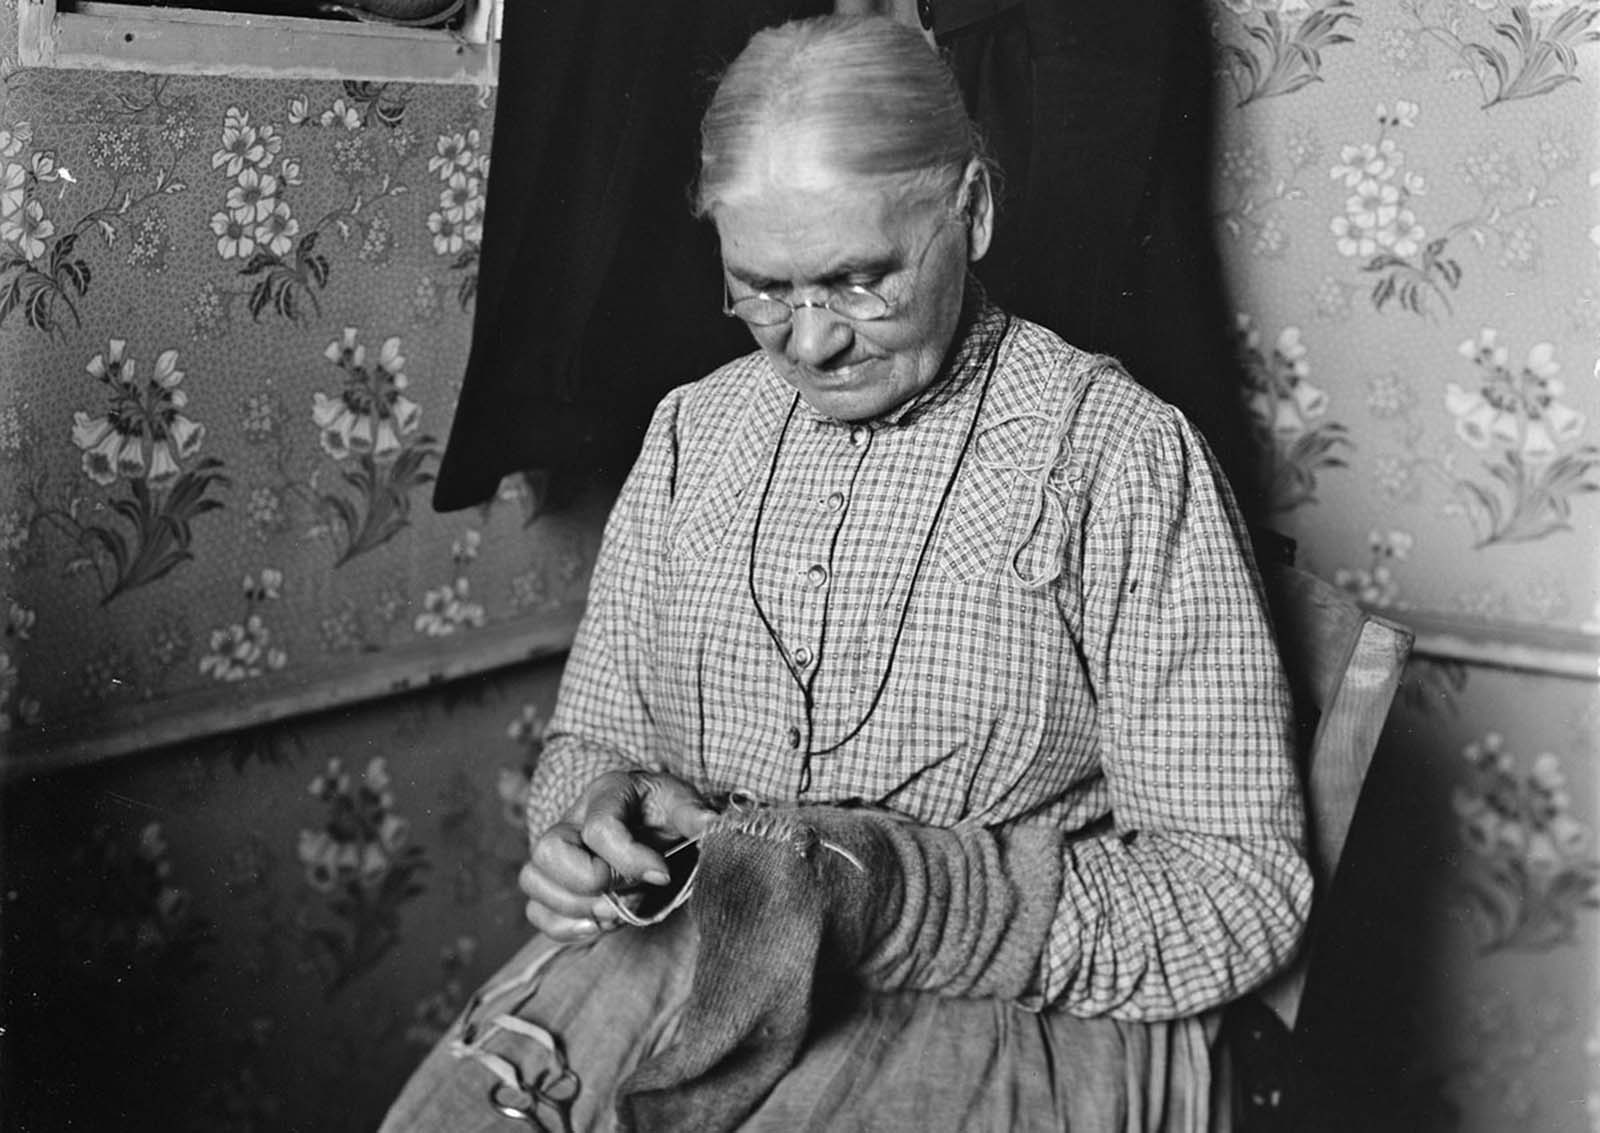 Mending socks for the American soldiers, Bureau of Refugees, Tours, September of 1918.